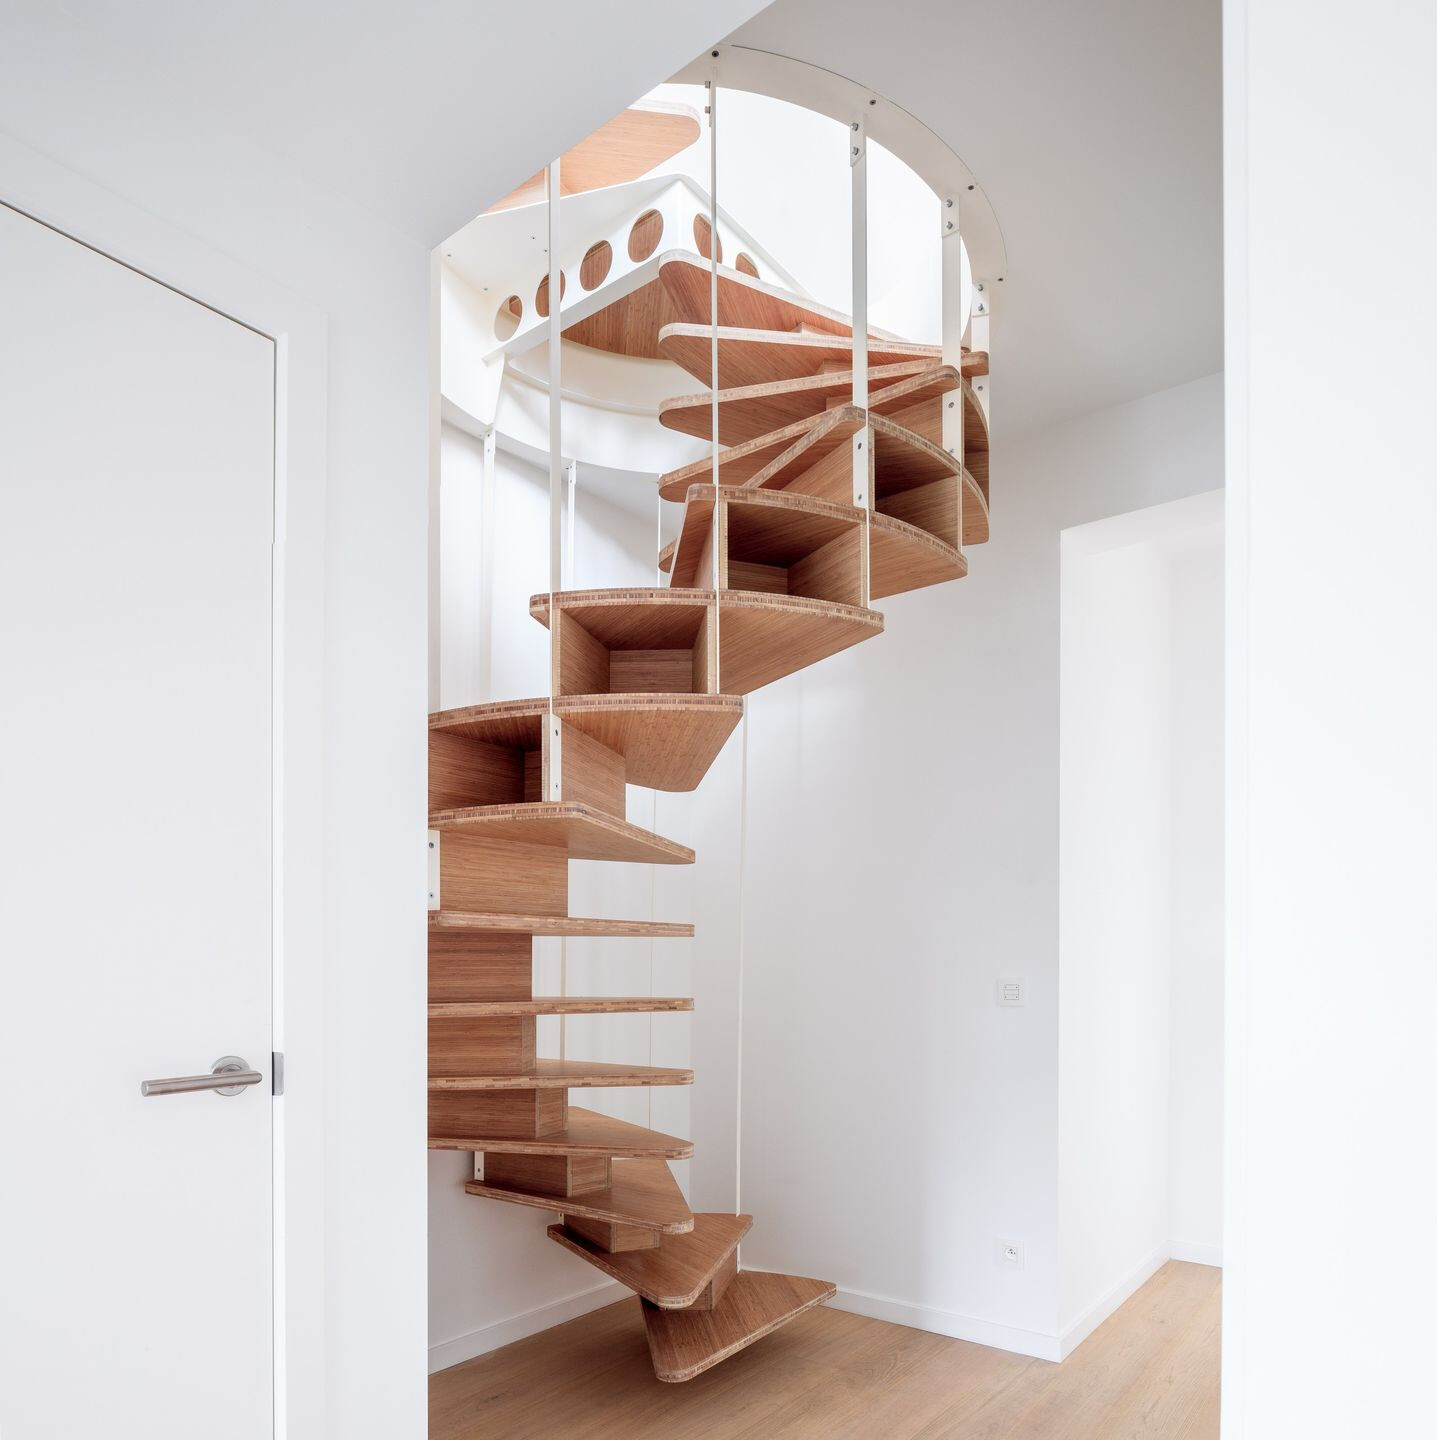 Double Olmo, The Architectural Staircase